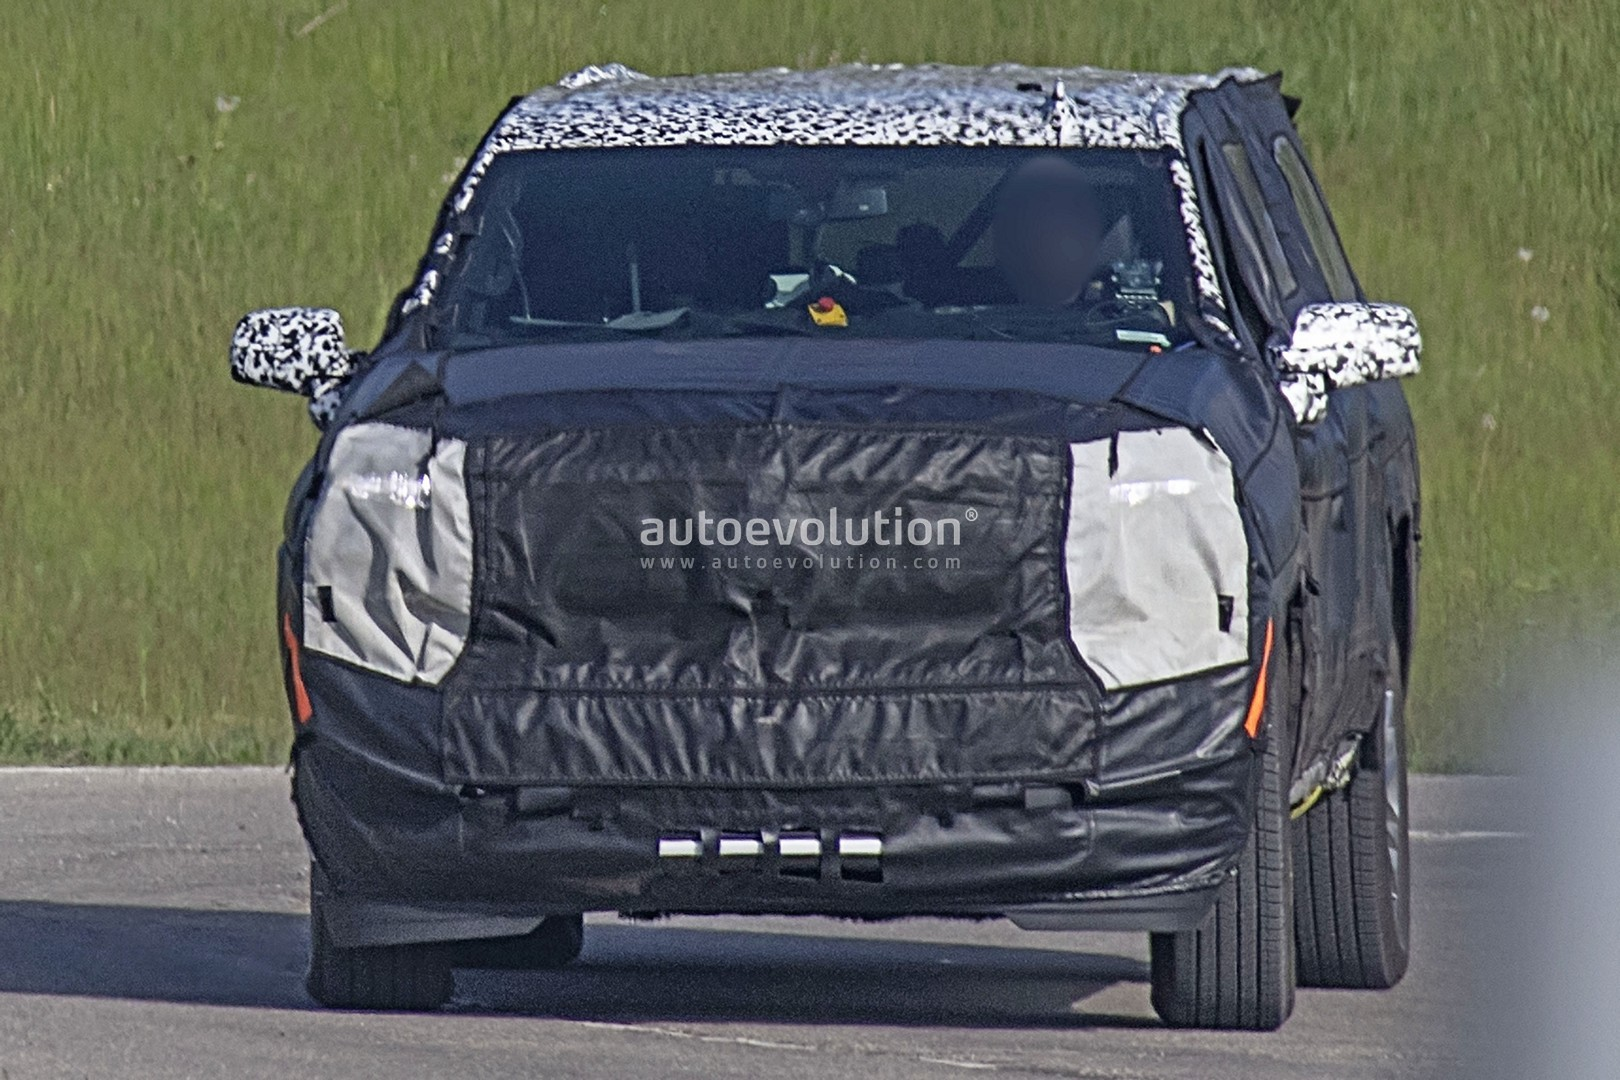 2020 Chevy Suburban Spyshots Reveal New Independent Rear ...